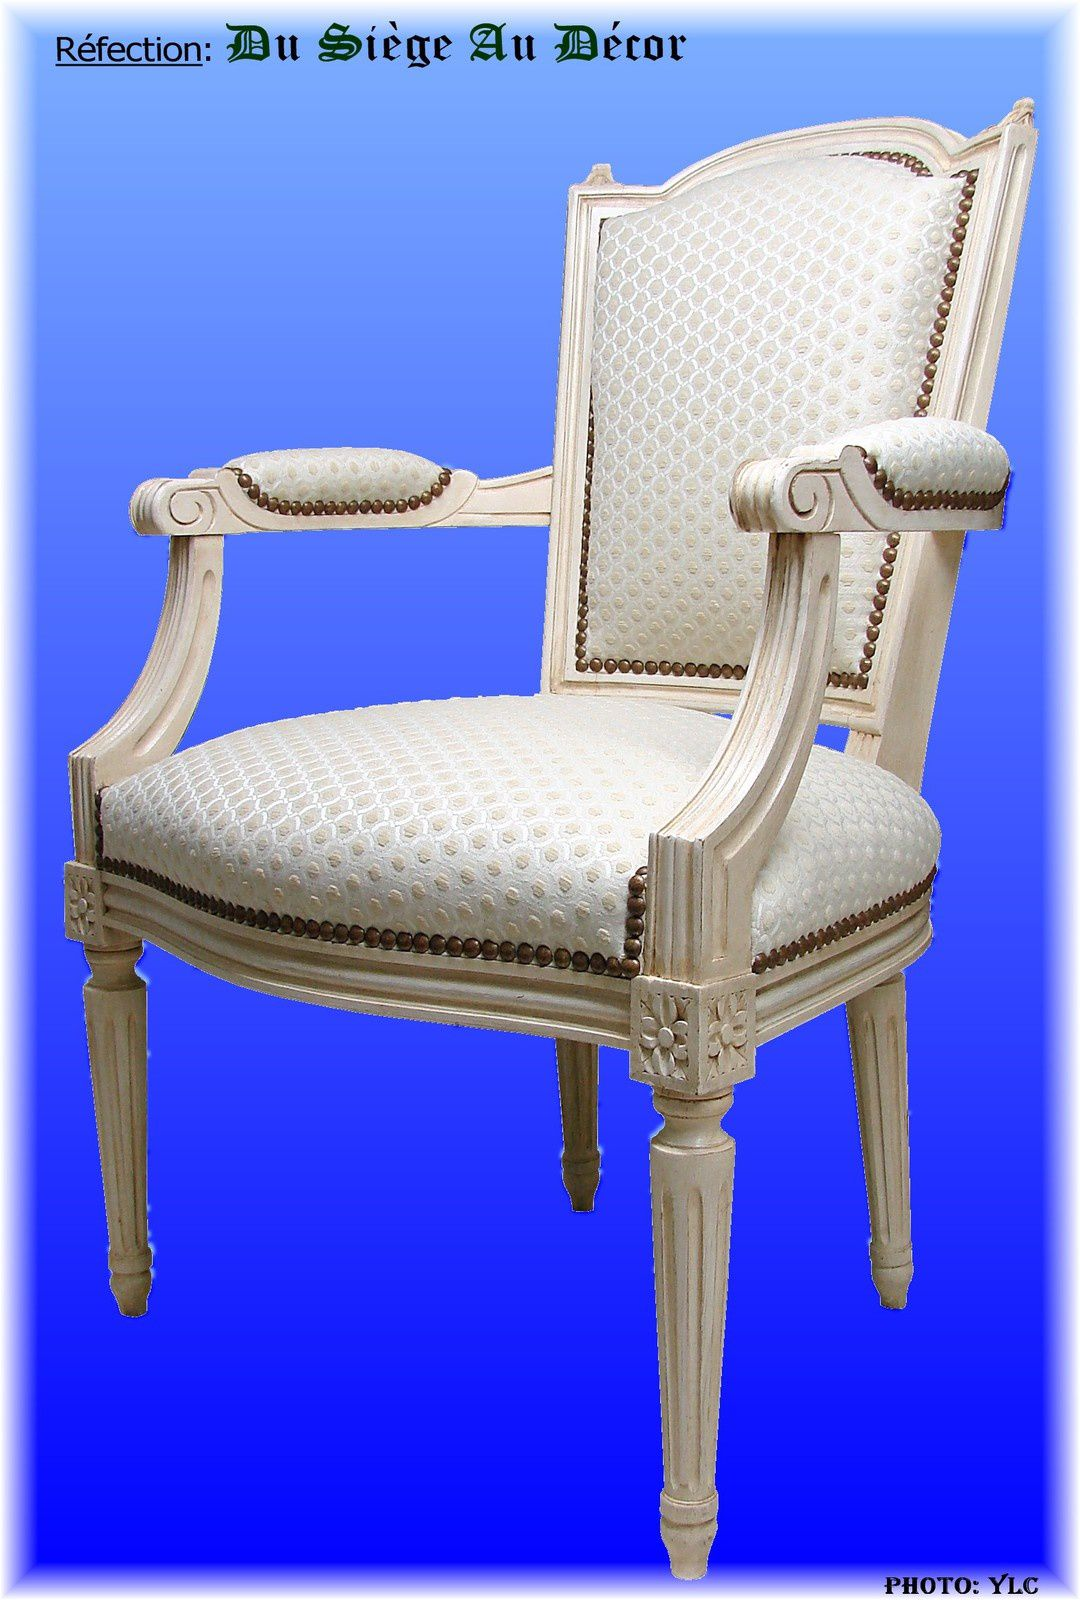 fauteuil style louis xvi du si ge au d cor tapissier d 39 ameublement du si ge au d cor. Black Bedroom Furniture Sets. Home Design Ideas